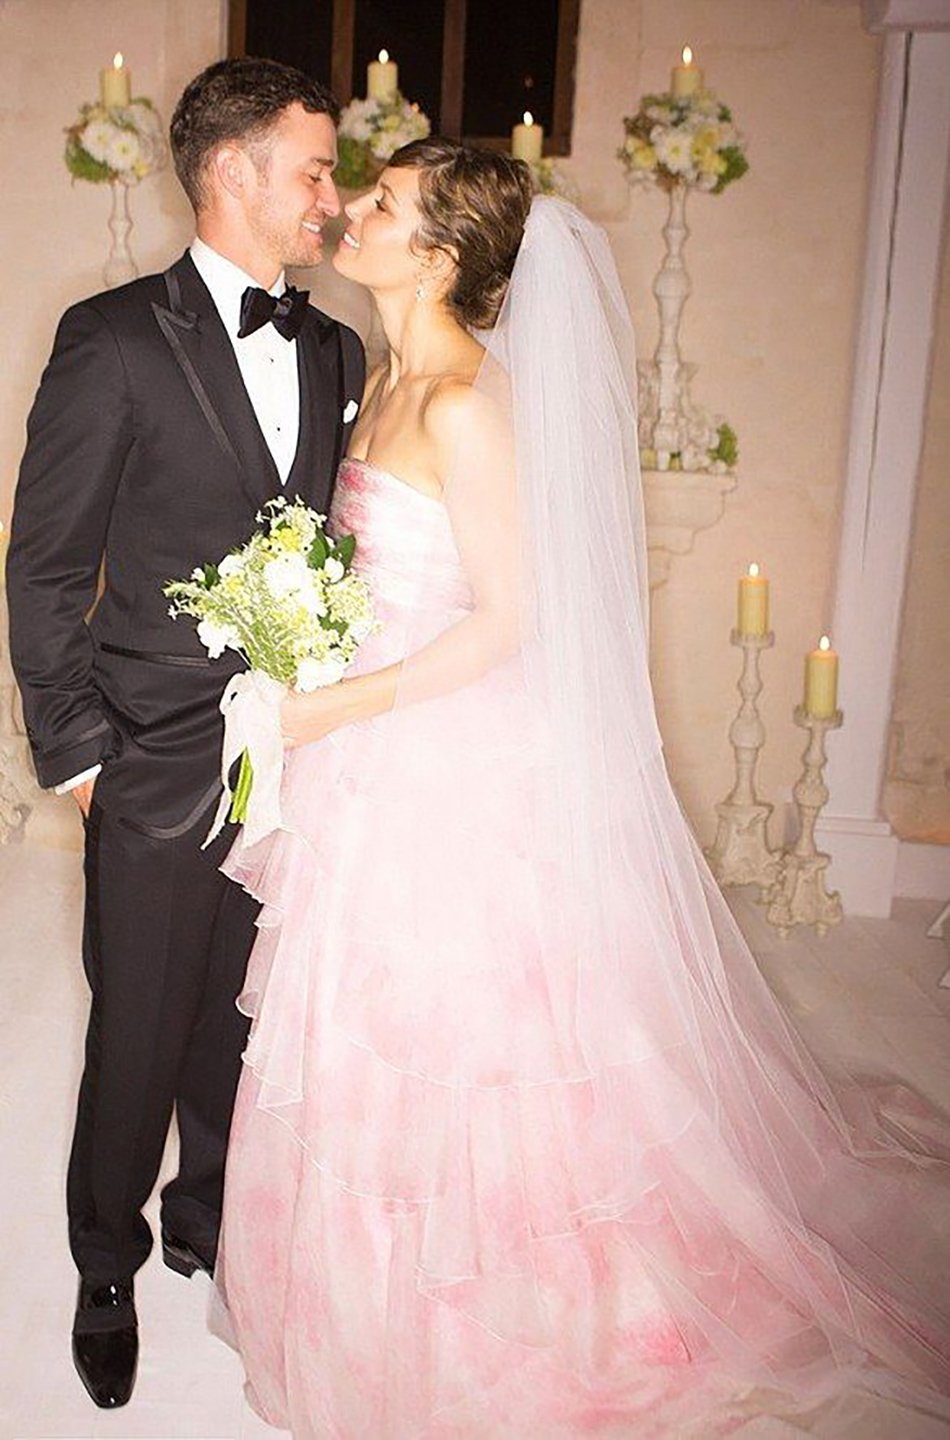 Wedding traditions you should break away from - White wedding dress   CHWV